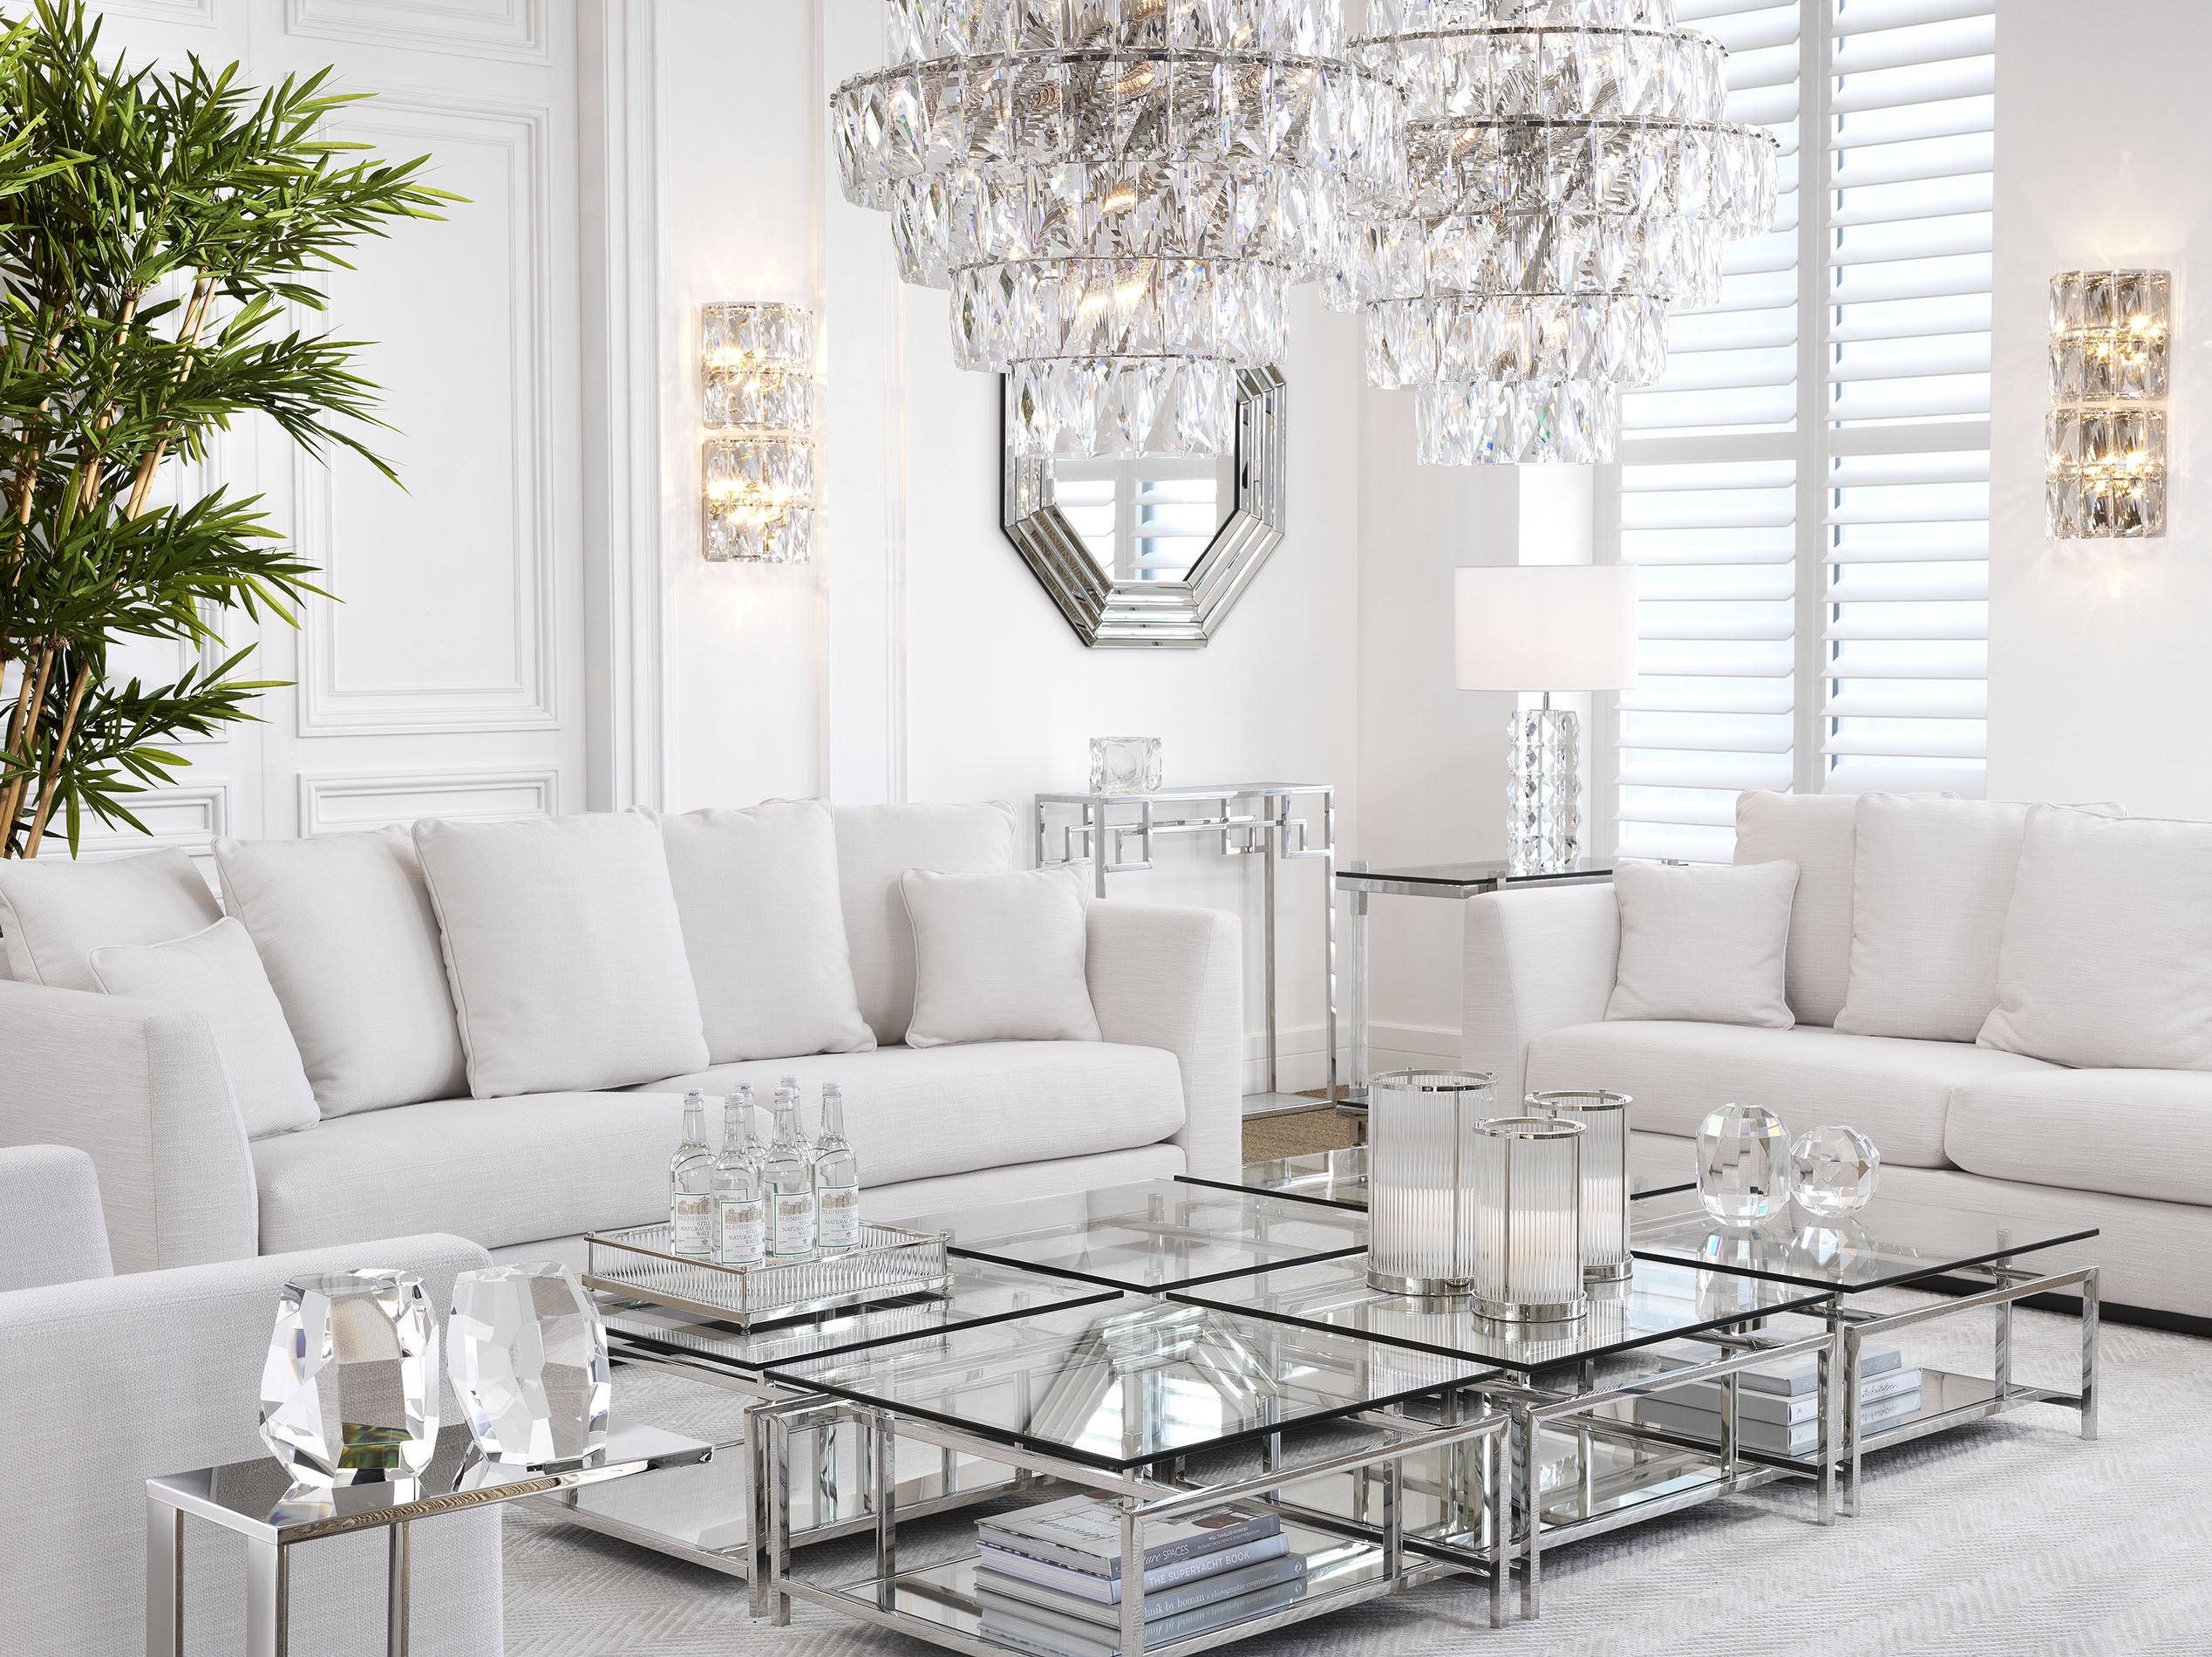 silver legs square coffee tables with white comfy sofas with no legs, anetoi megaloi kanapedes me asimenia trapezakia tetragona,